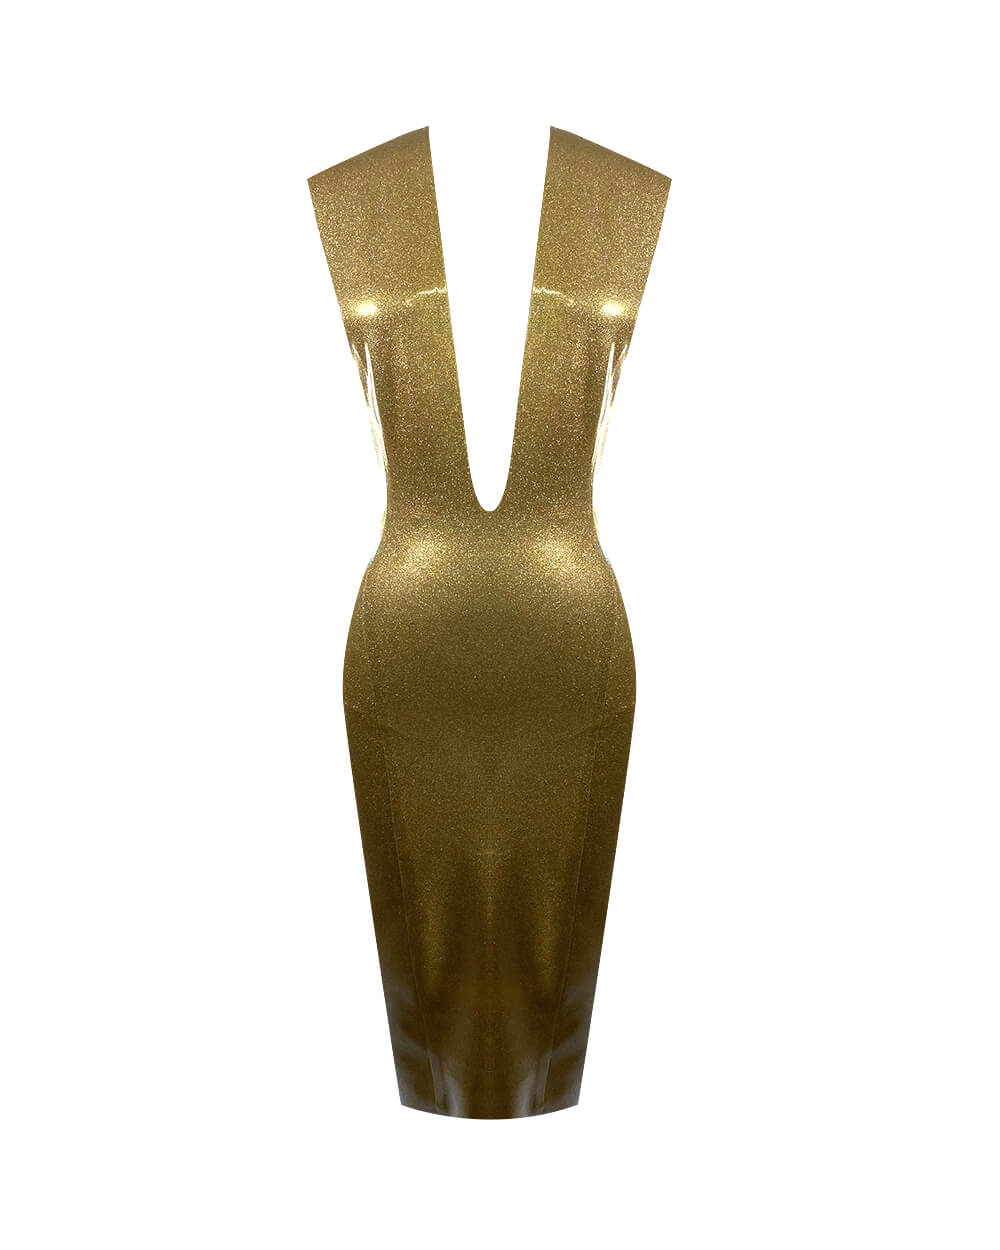 Vex Latex Print Plunge Dress In Gold